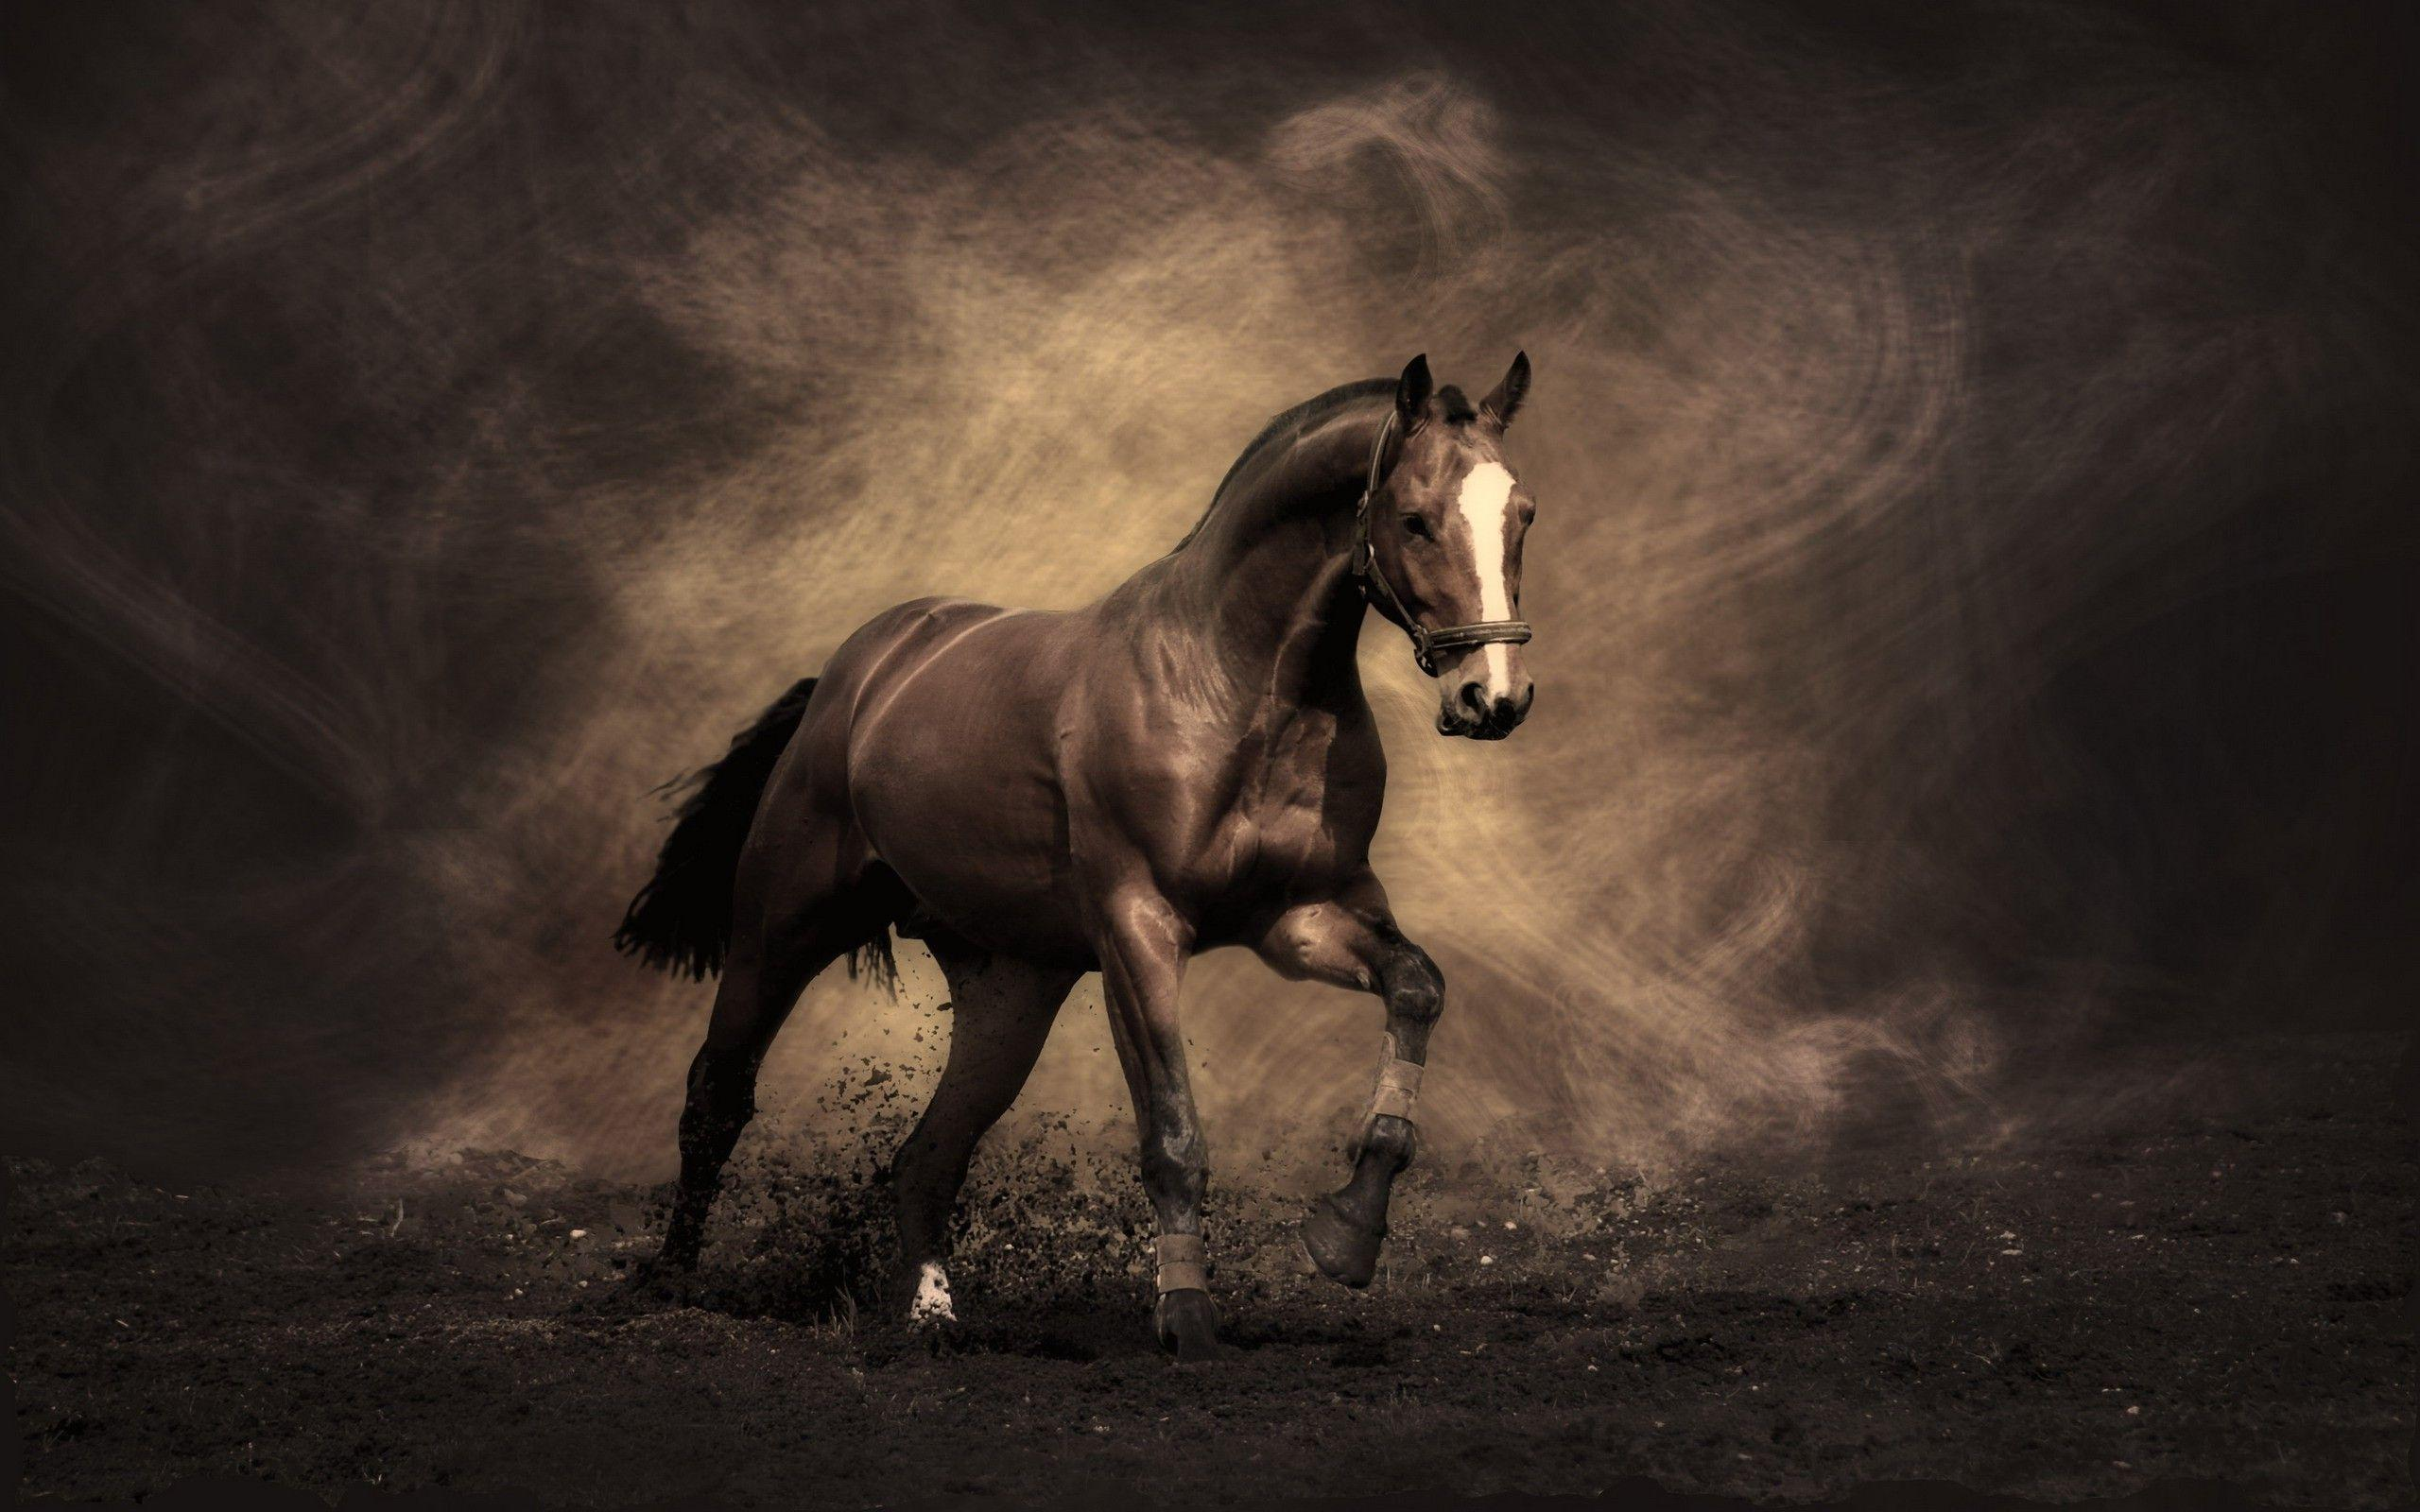 Horse wallpapers wallpaper cave for Sfondi di cavalli gratis